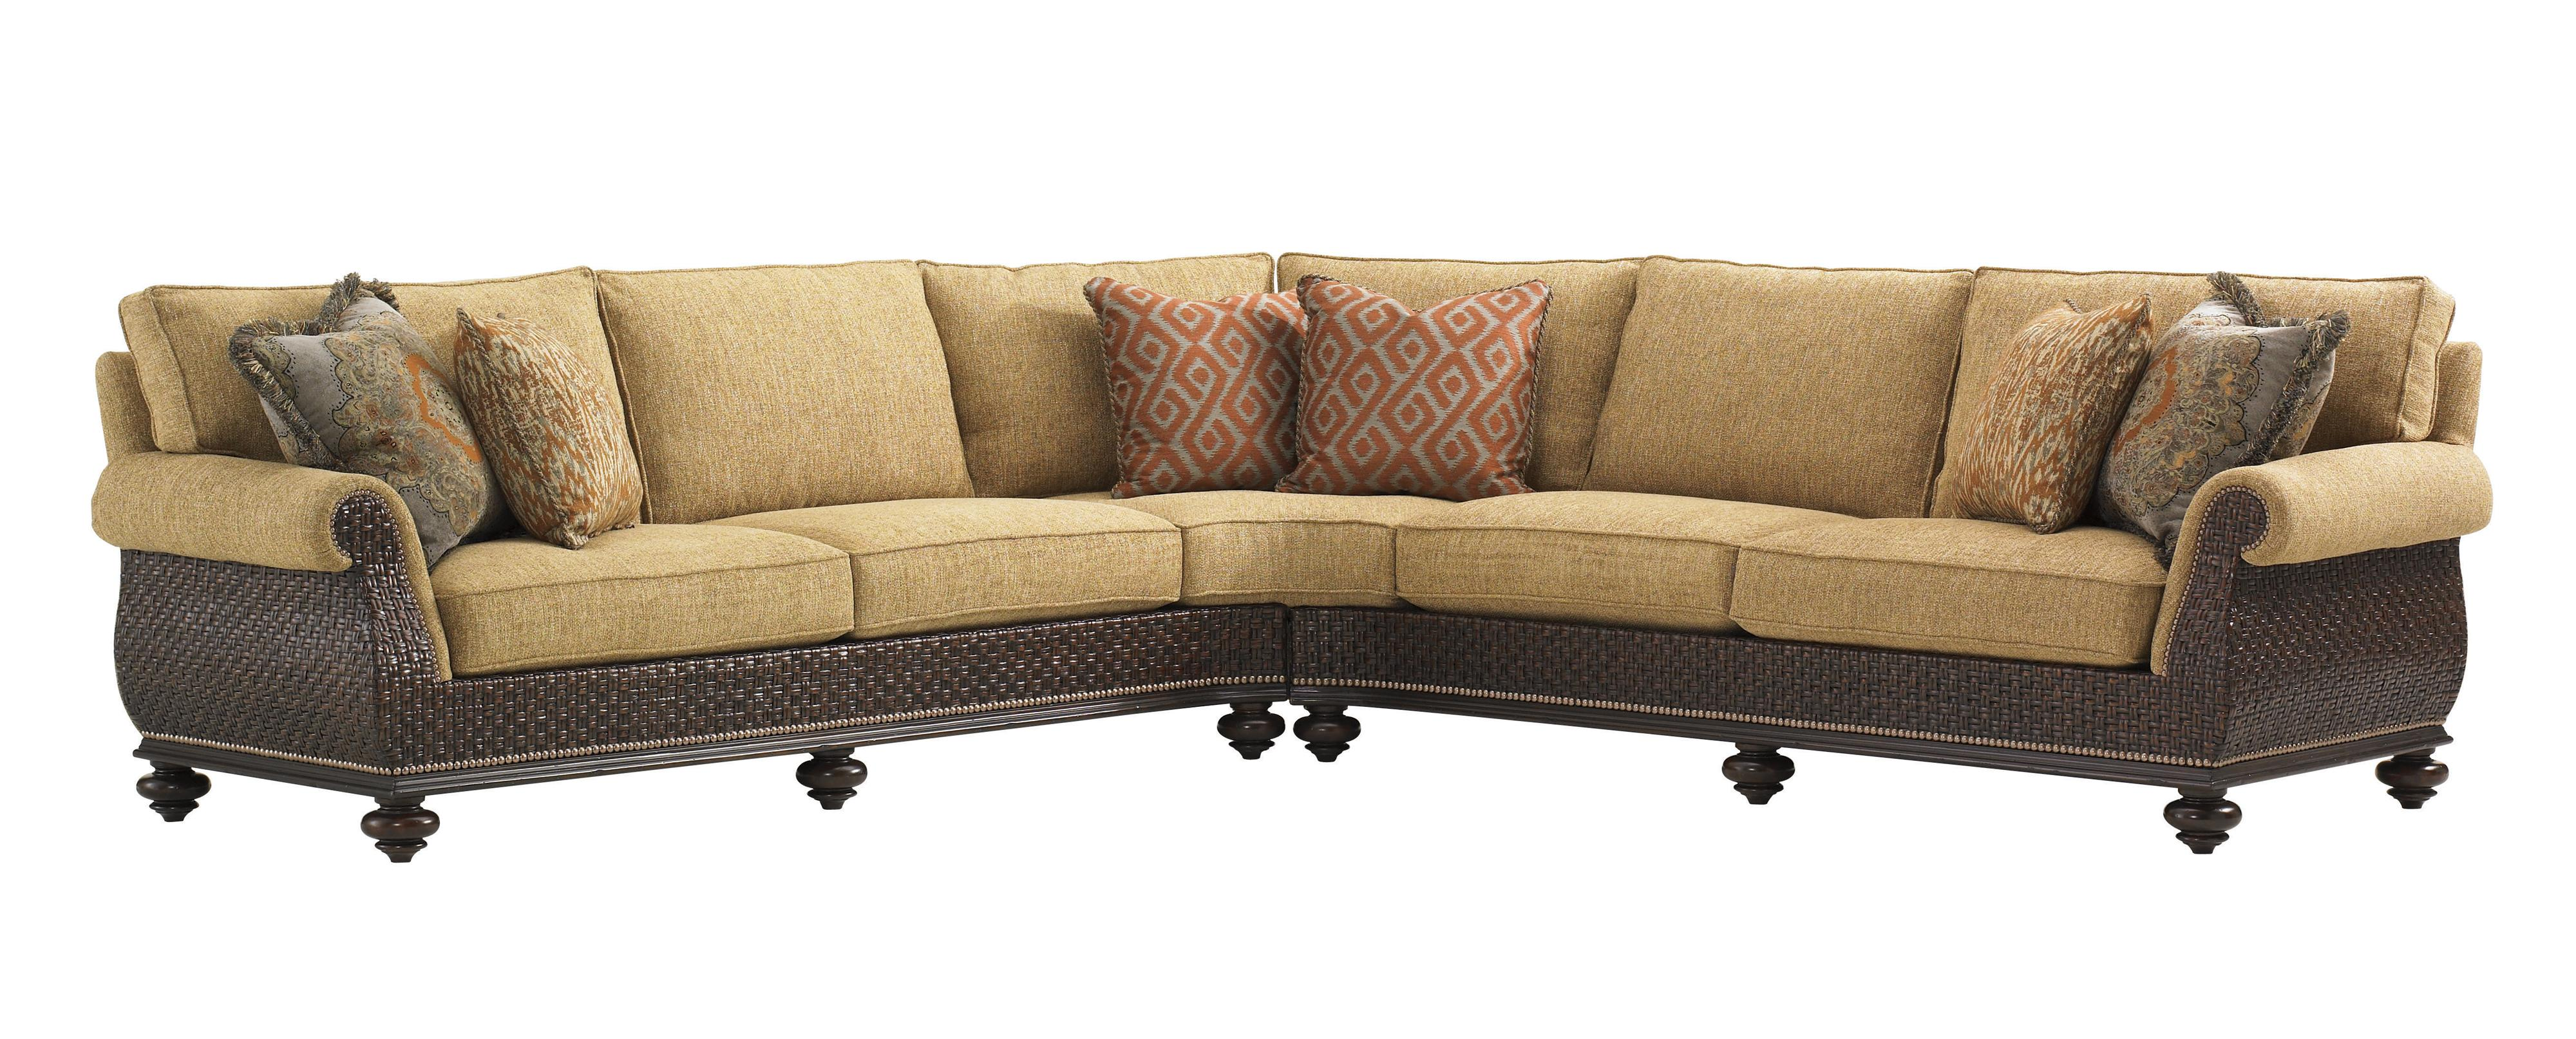 Tommy Bahama Home Island Traditions Westbury Sectional Sofa   Item Number:  1768 53LCR+